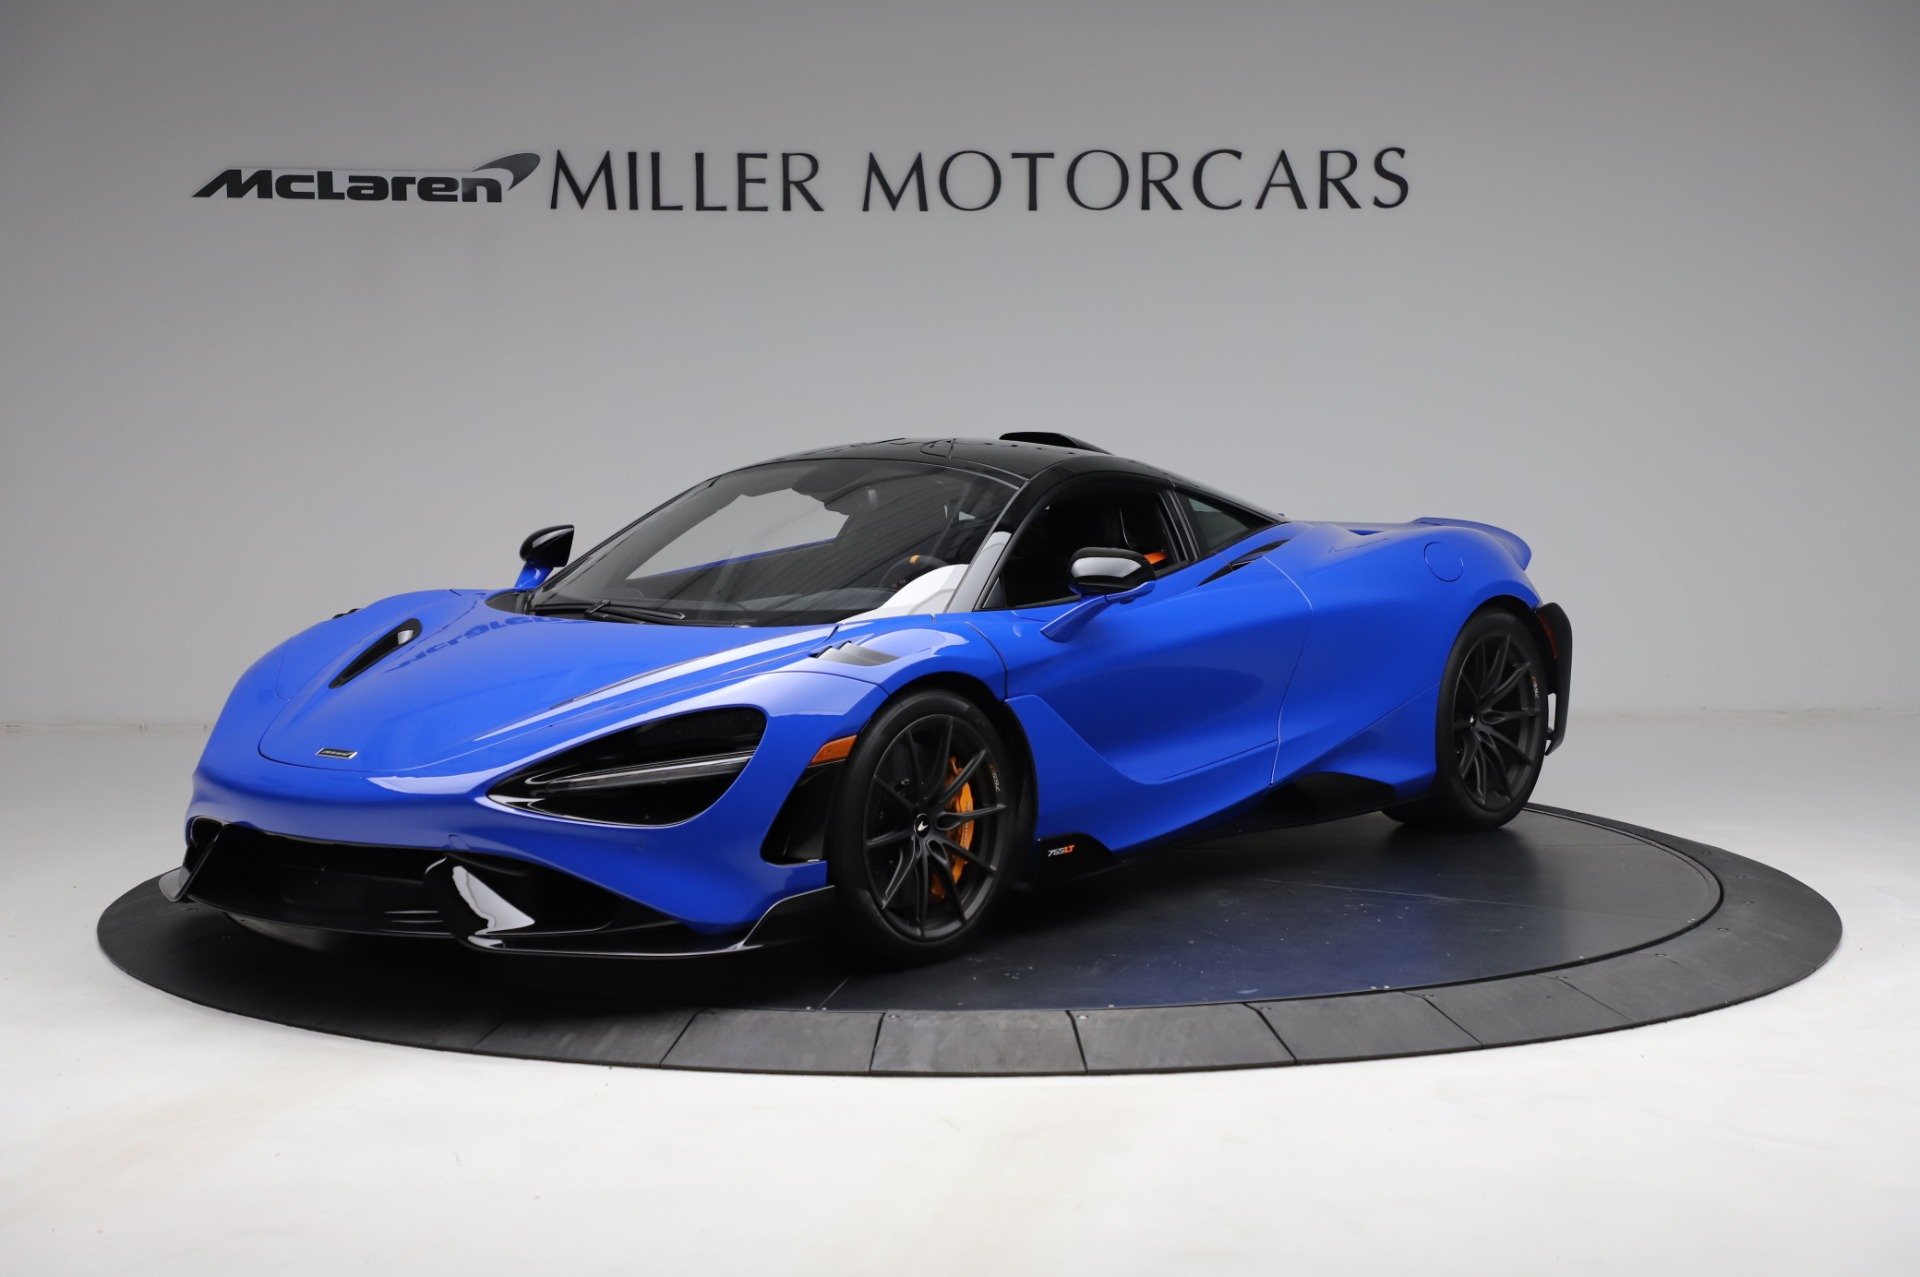 Used 2021 McLaren 765LT for sale Sold at Bugatti of Greenwich in Greenwich CT 06830 1